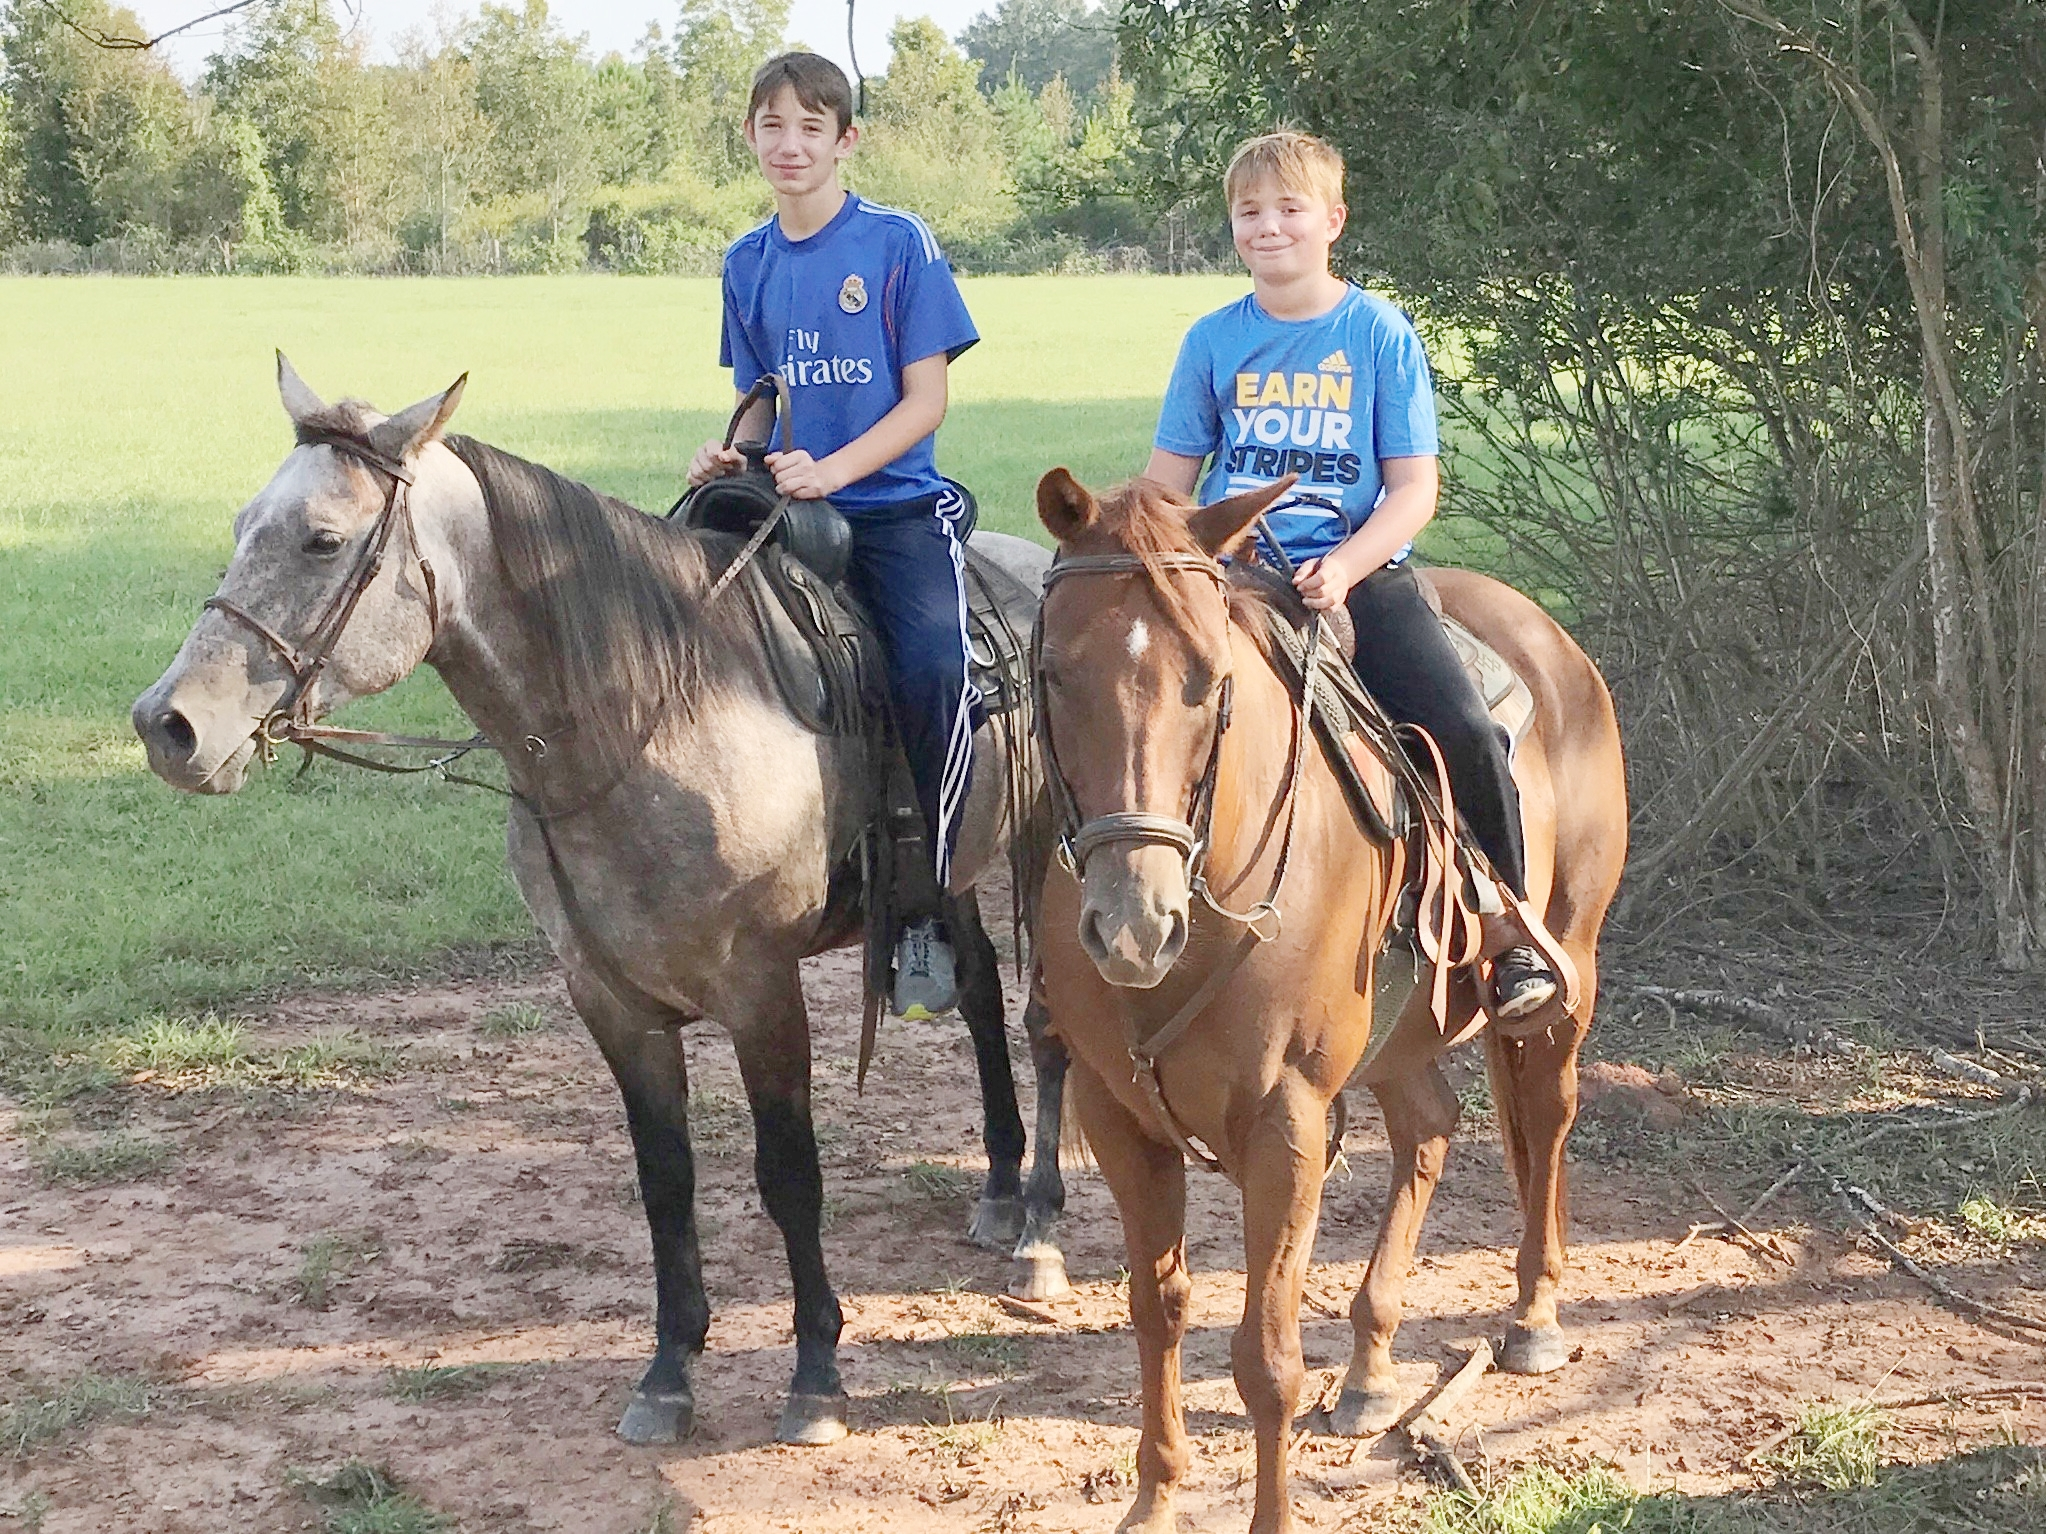 Relaxing rides in the pasture